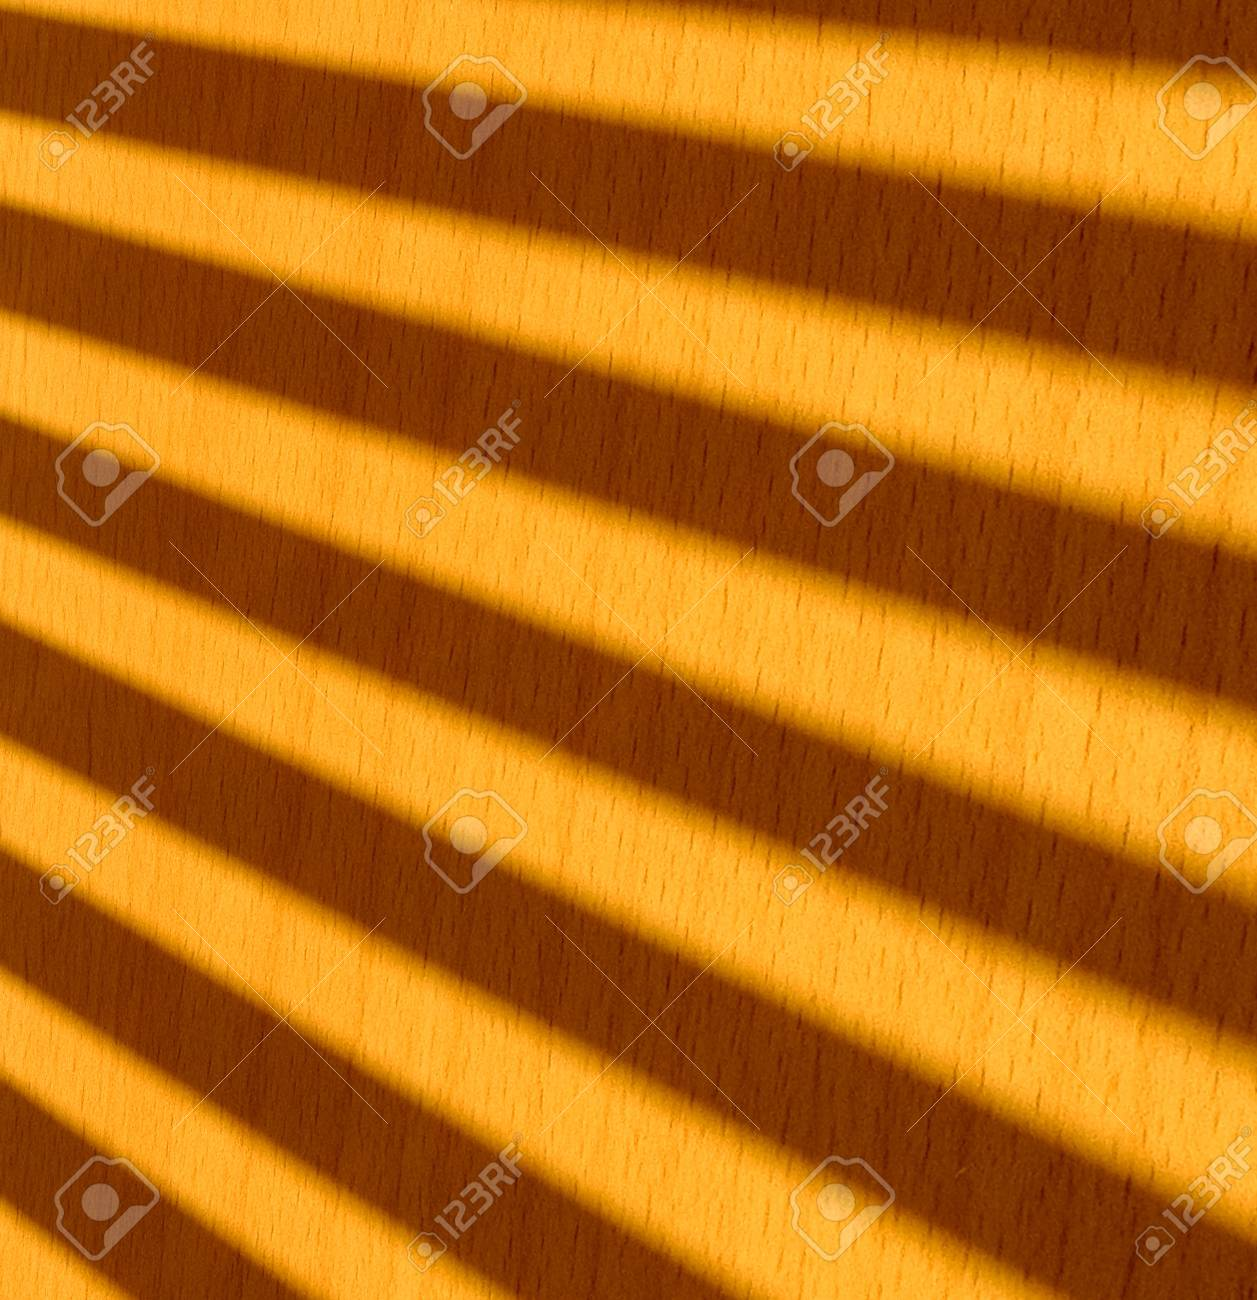 The Shadow Of The Sun Blinds On The Doors Of Wardrobe Stock Photo Picture And Royalty Free Image Image 118122553